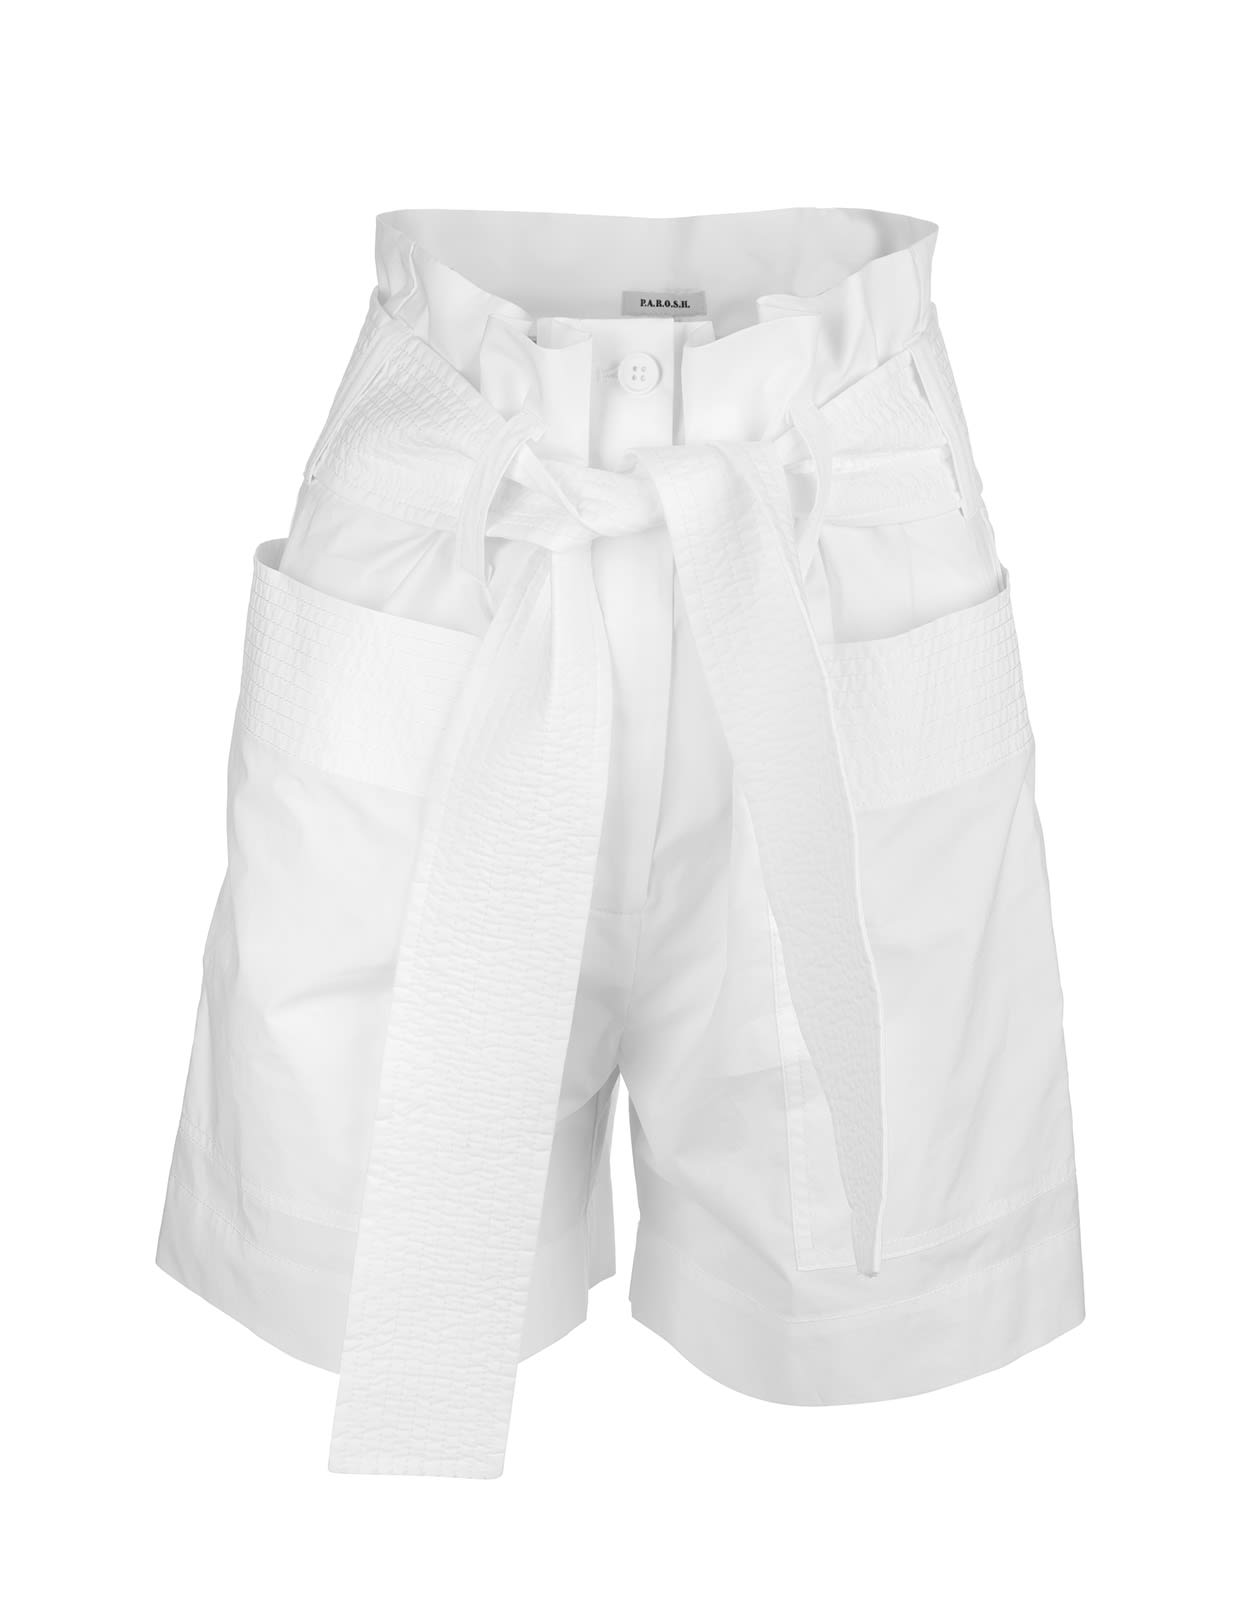 A.R.O.H. high-waisted shorts in white cotton with side patch pockets, flap with zip and button, belt loops, belt in tone with front knot. Length above the knee and soft fit. Composition: 100% Cotton